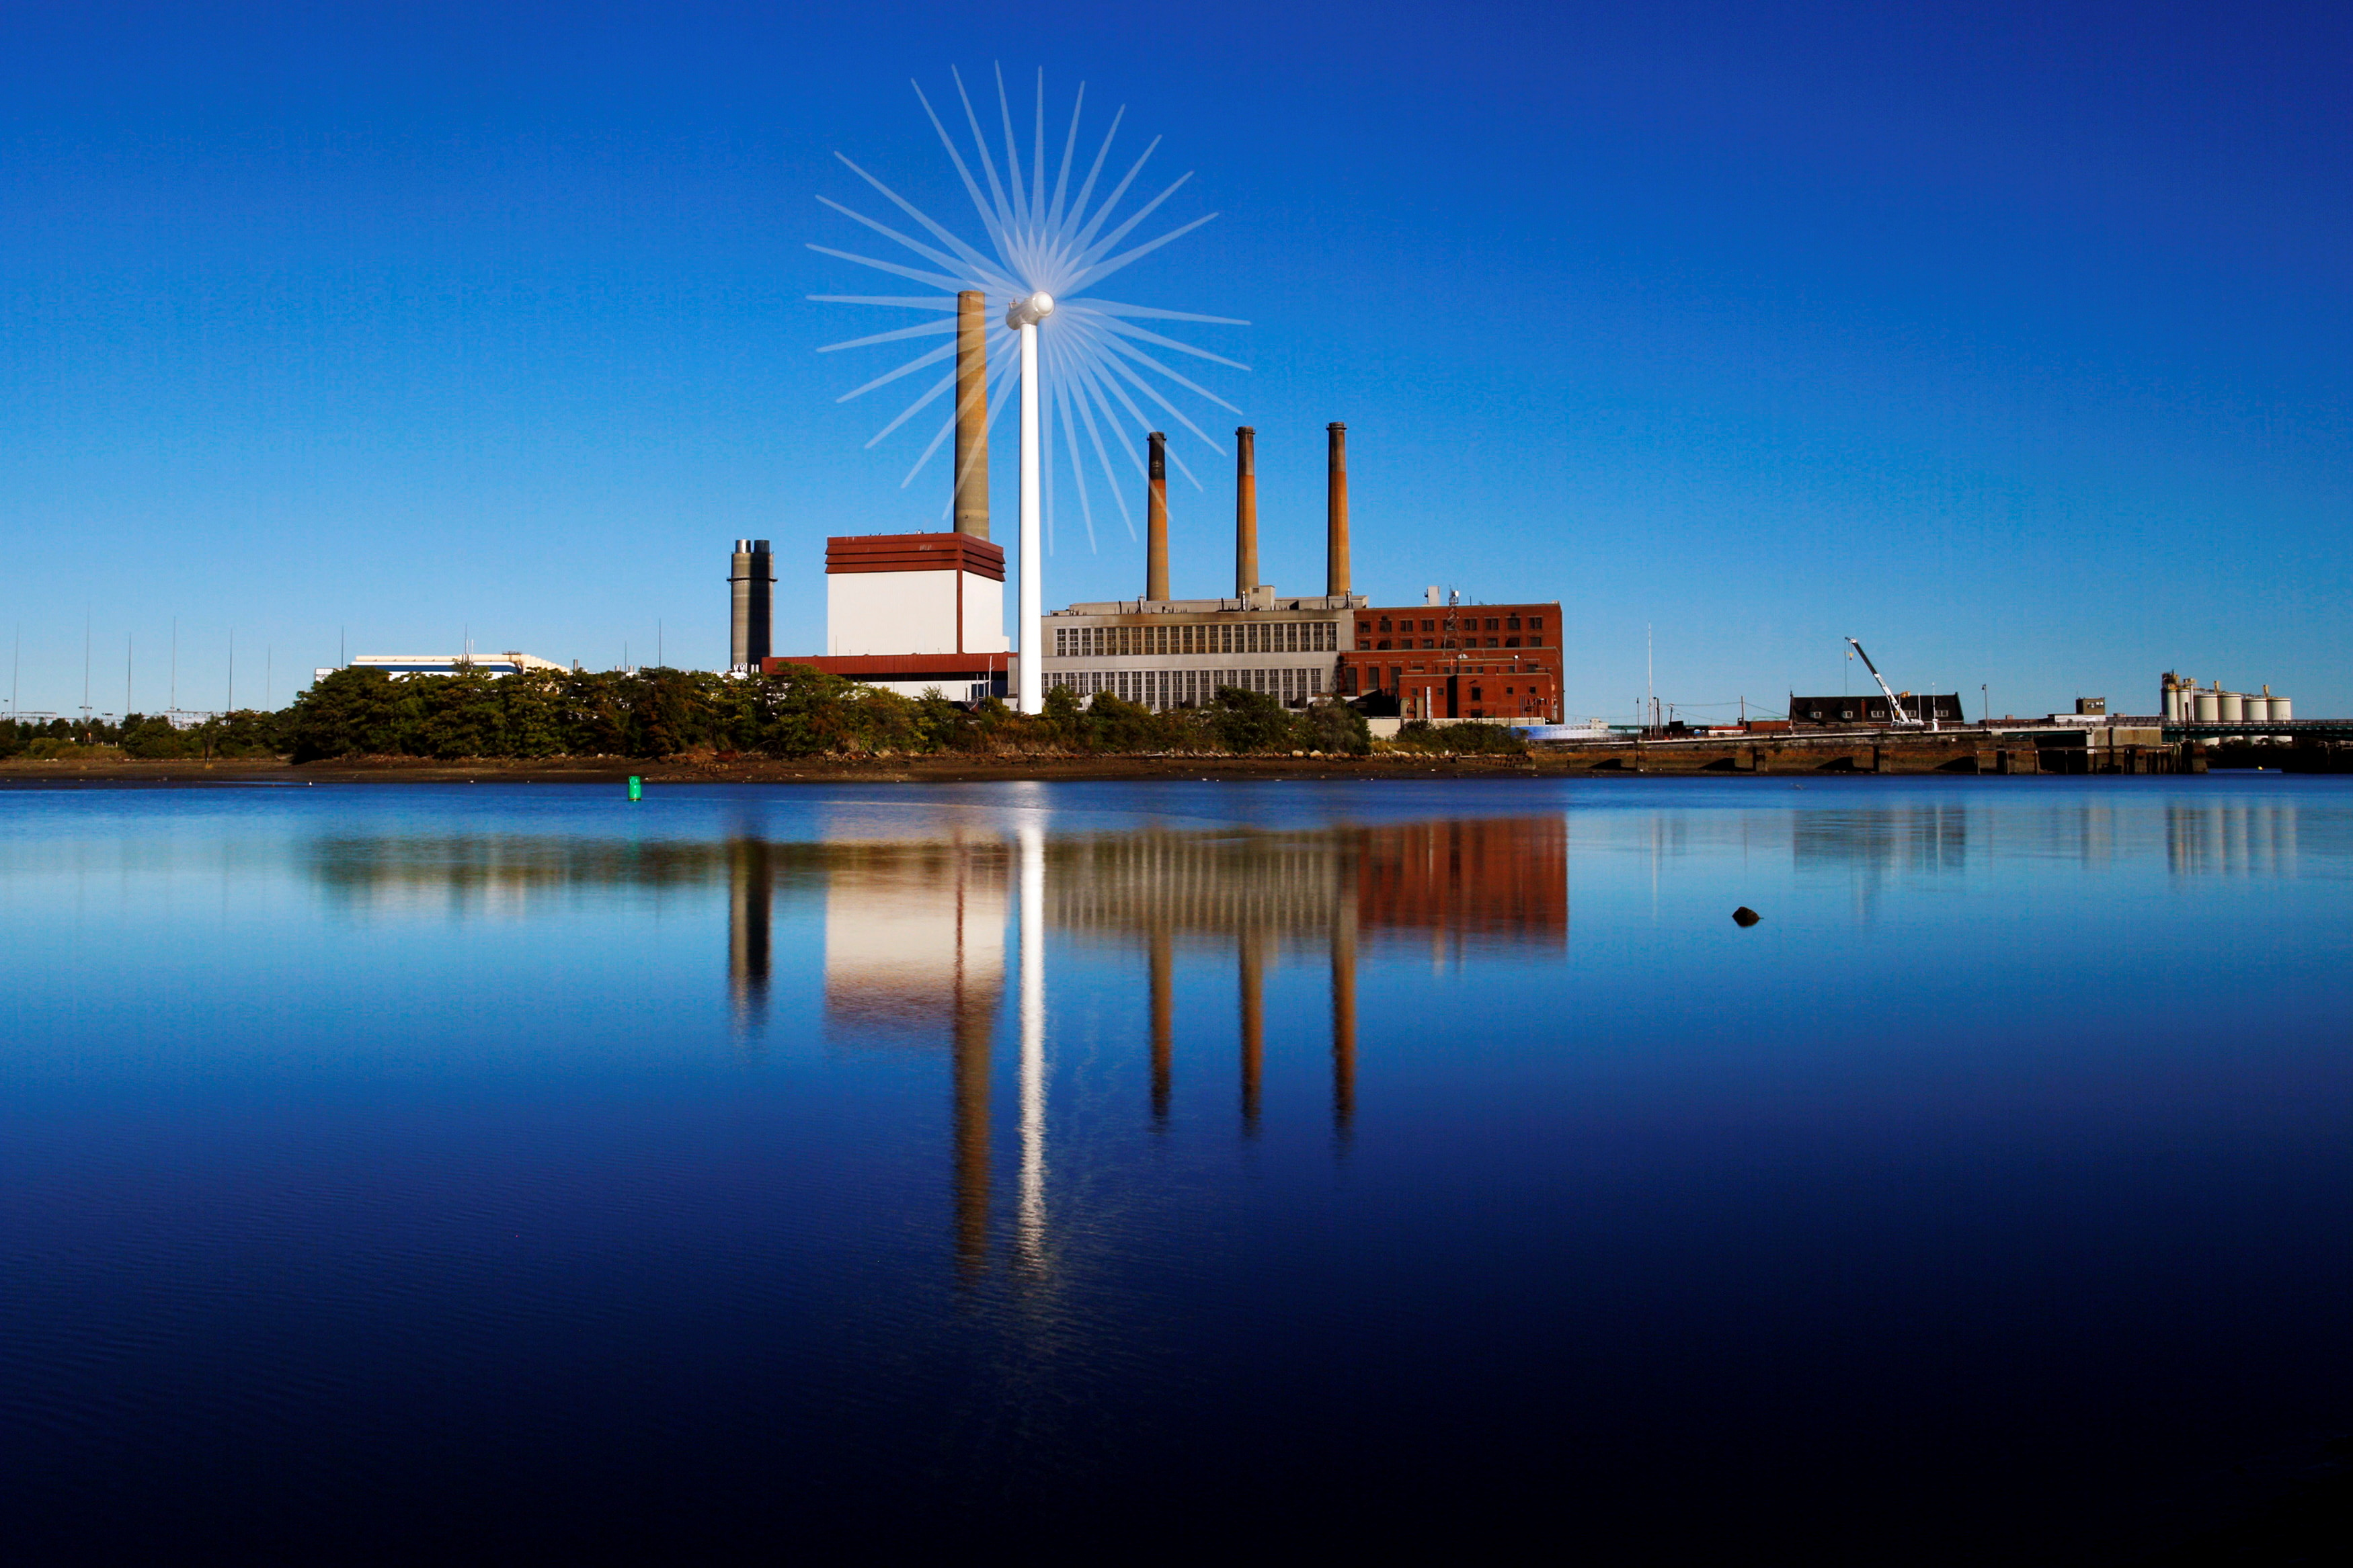 A Massachusetts Water Resources Authority wind turbine turns in front of a 1951 megawatt fossil fuel power plant in Charlestown, Massachusetts September 18, 2013.   The wind turbine powers the MWRA waste water pumping station at that site and the power plant uses natural gas and oil.  This is an in-camera, multiple exposure photograph.  REUTERS/Brian Snyder/File Photo